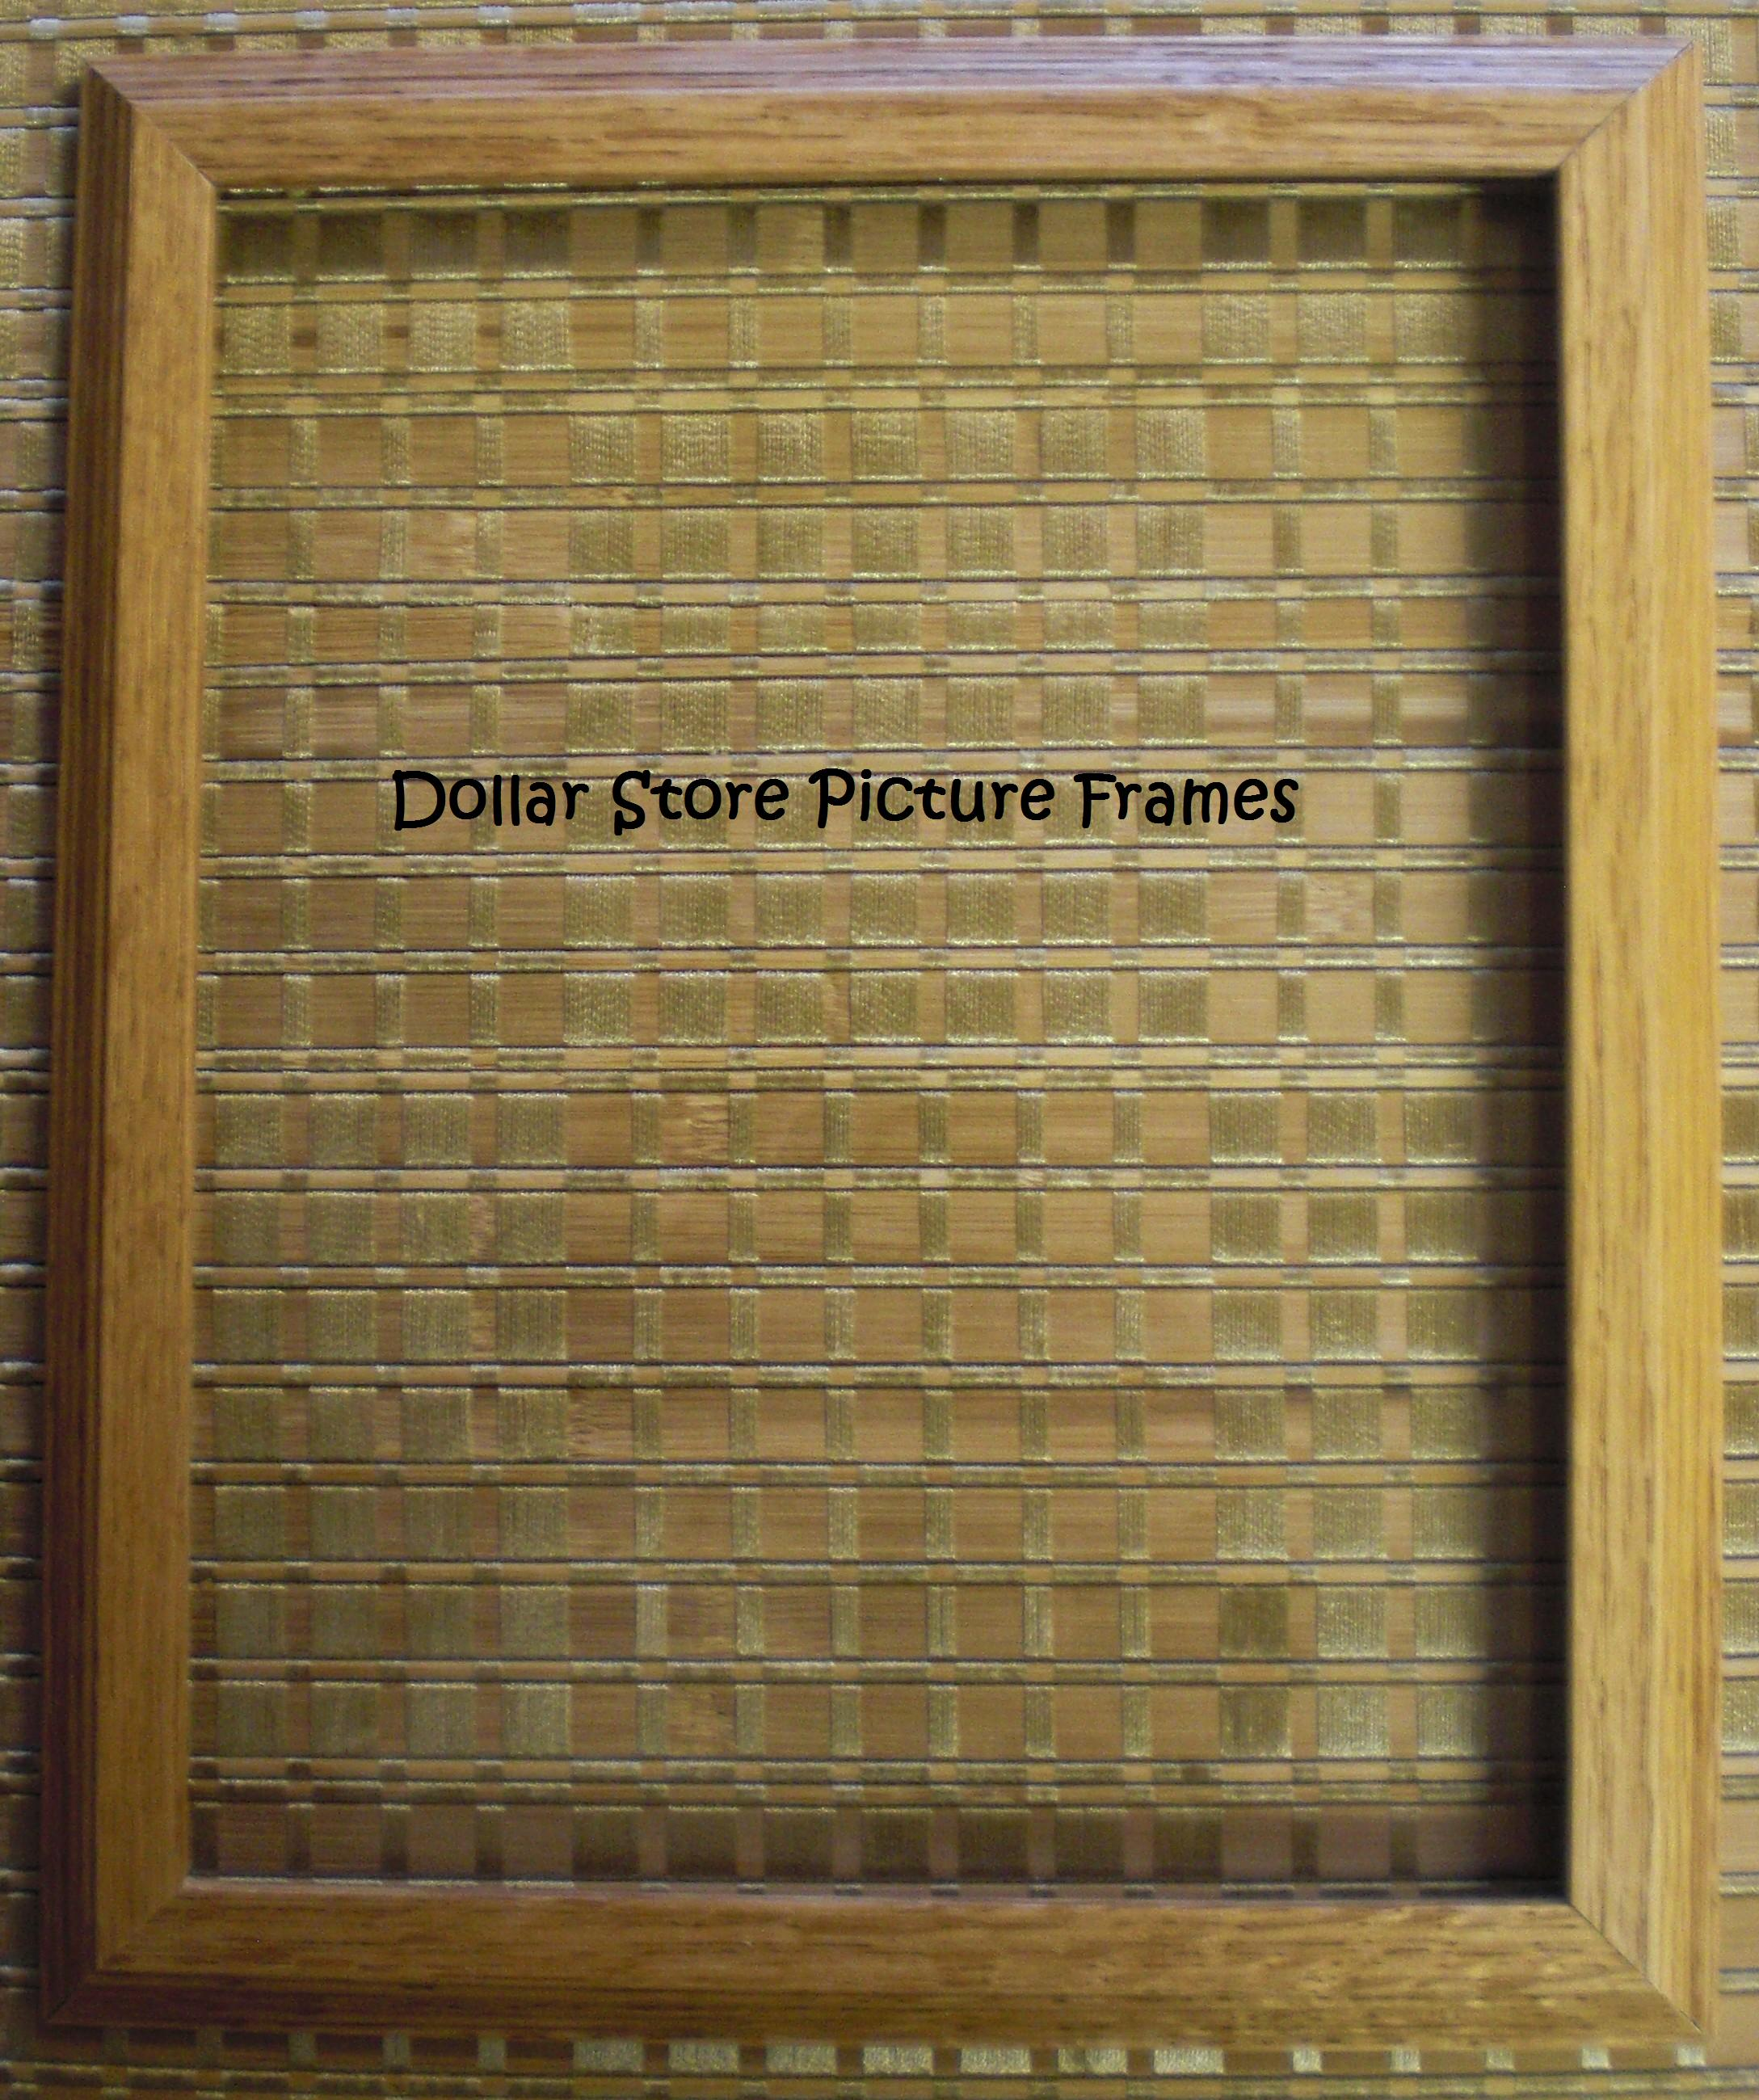 How-To: Revamping Dollar Store picture frames | All That Glitters